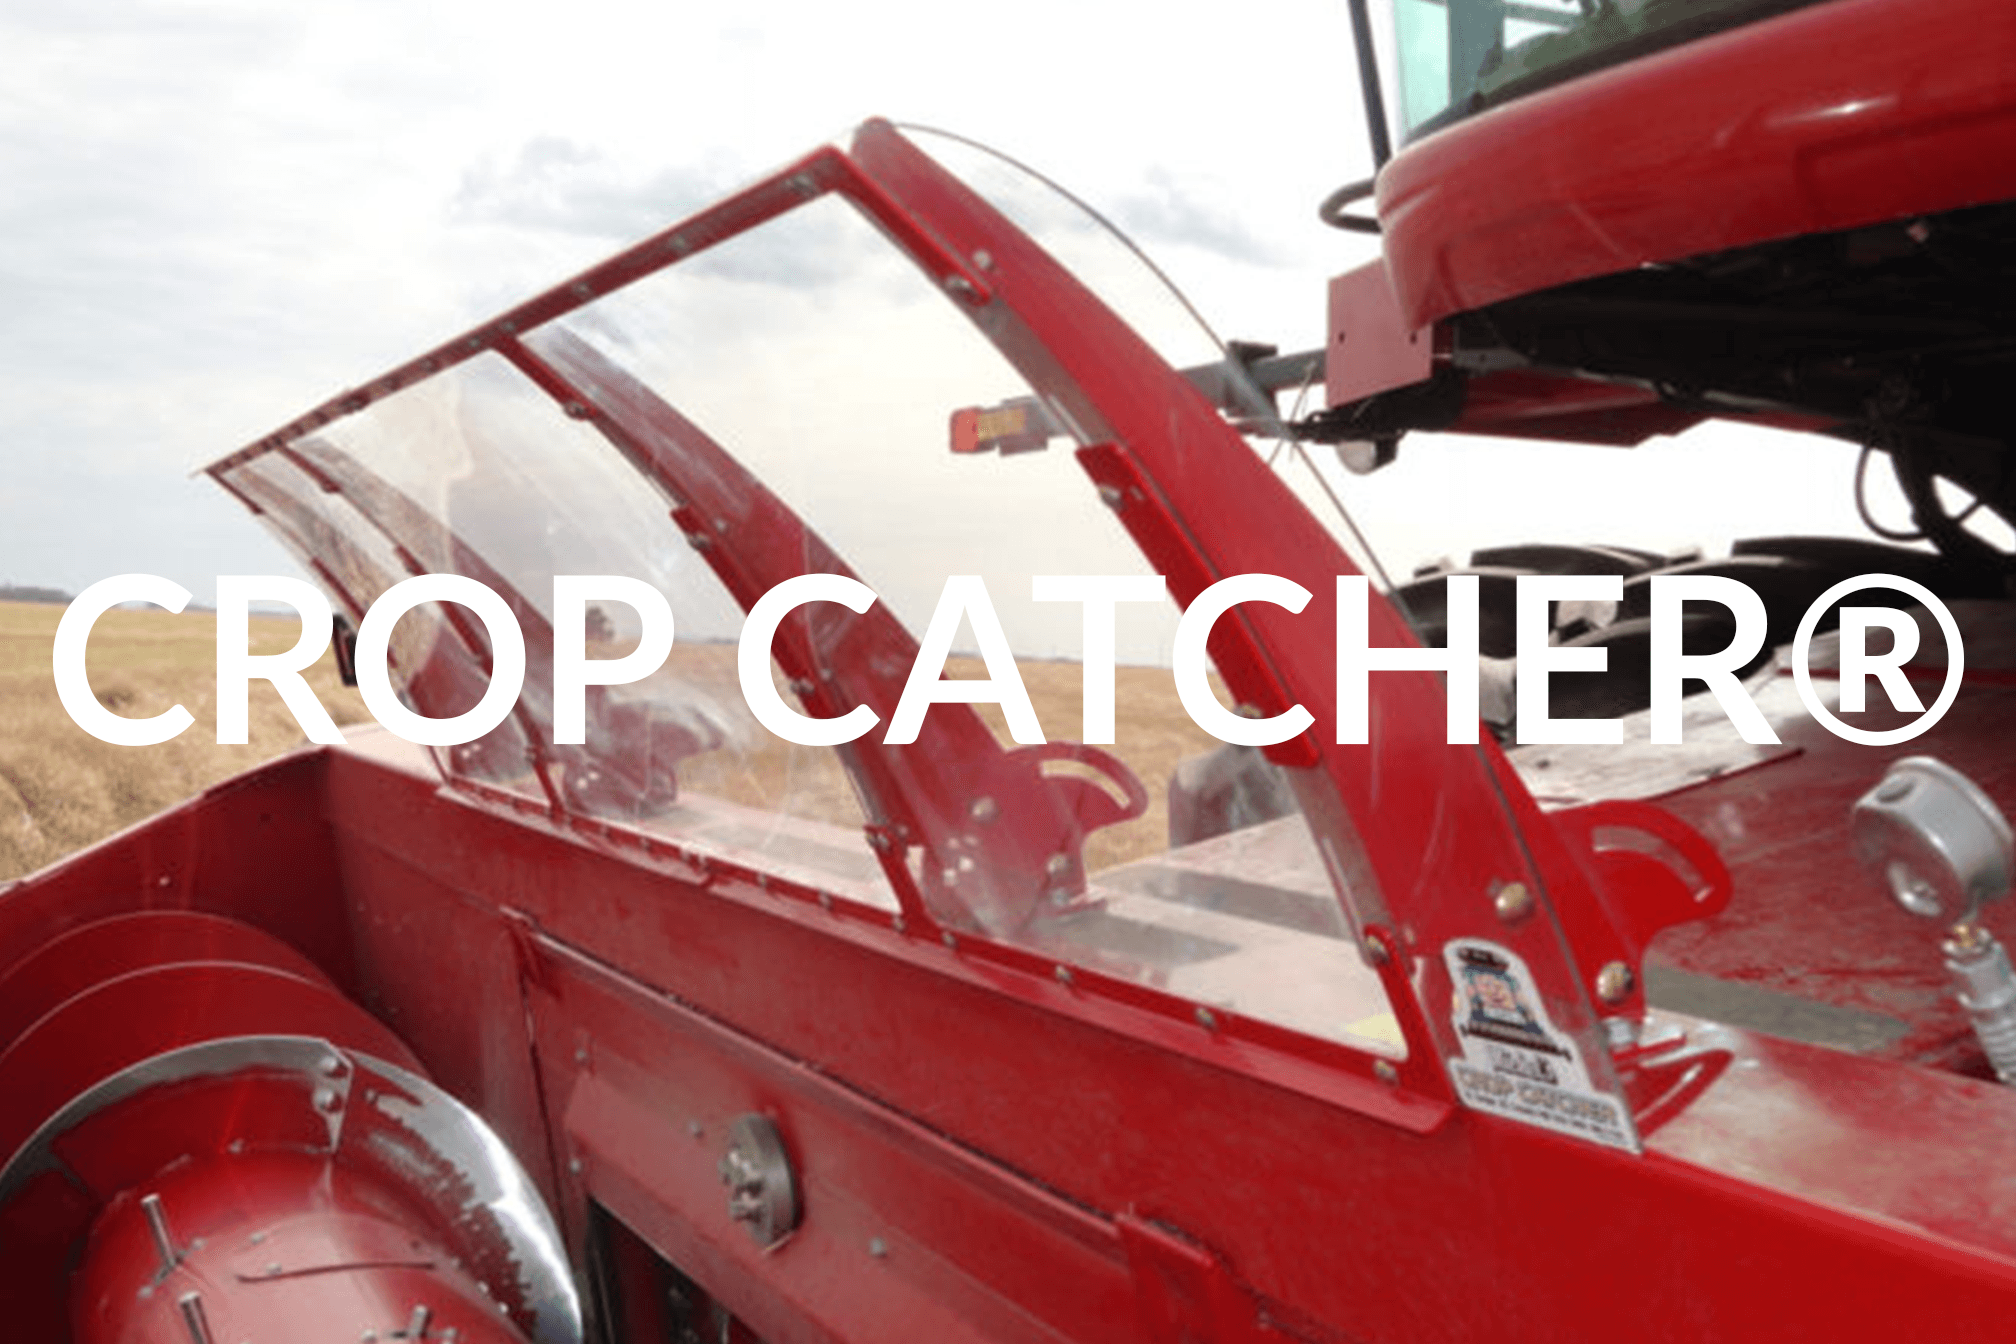 Crop Catcher®